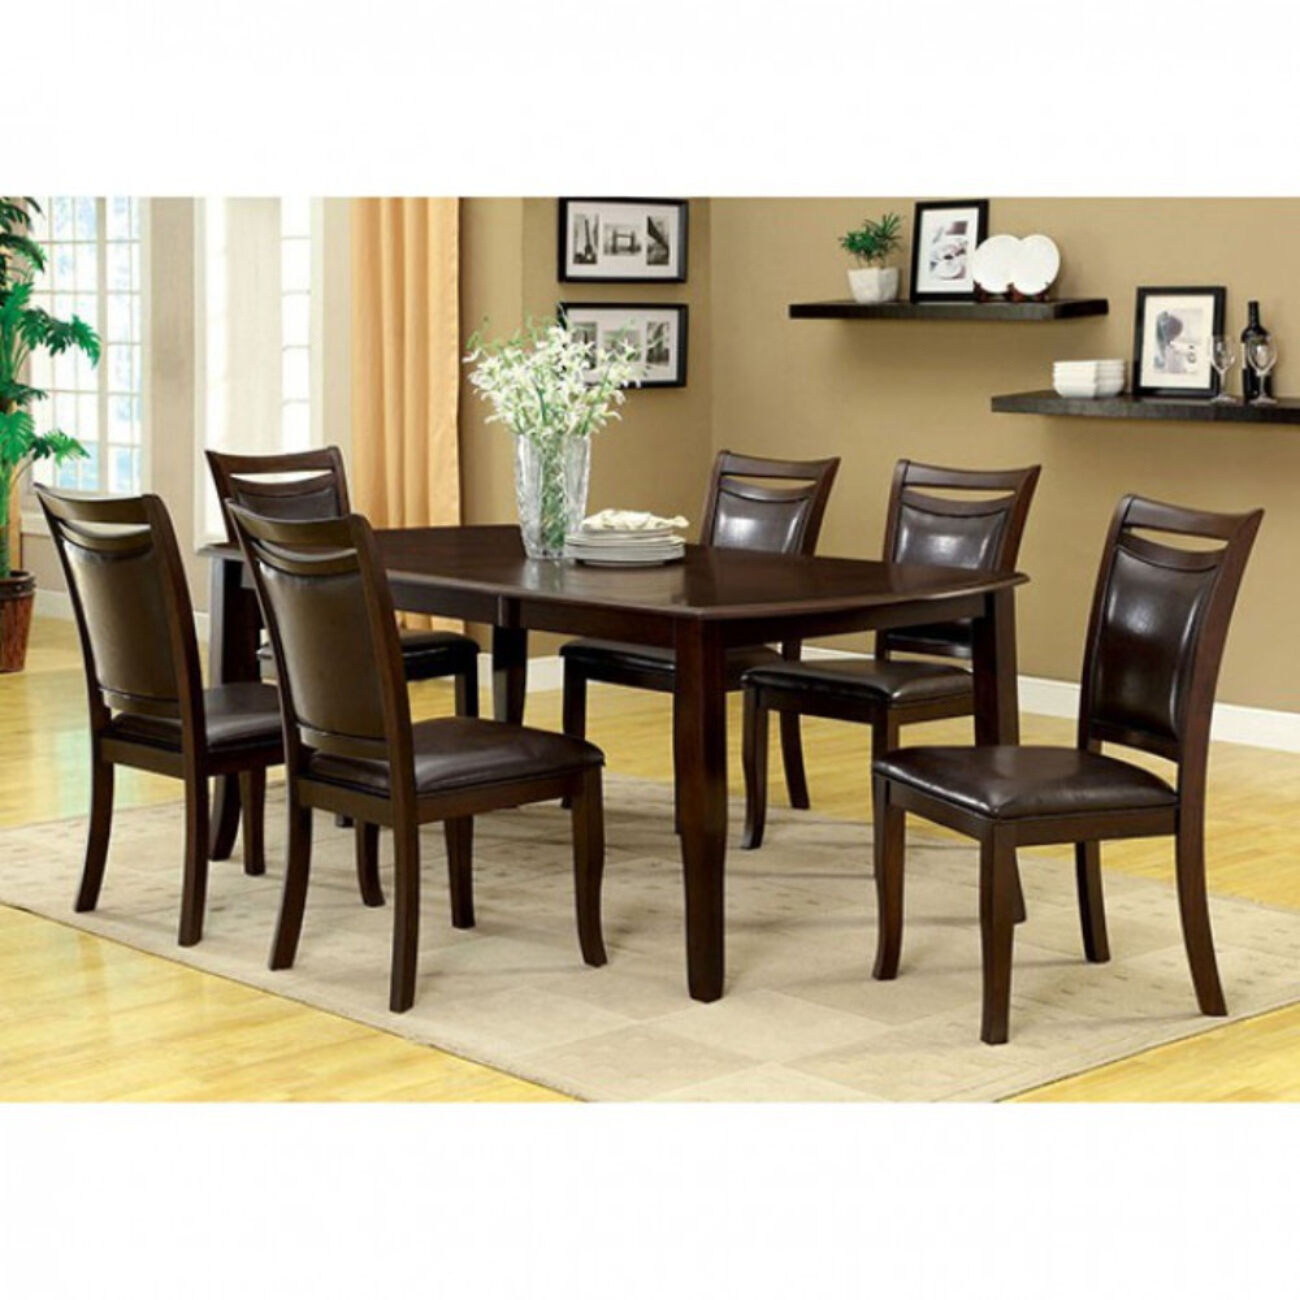 Woodside Contemporary Dining Table, Expresso Finish